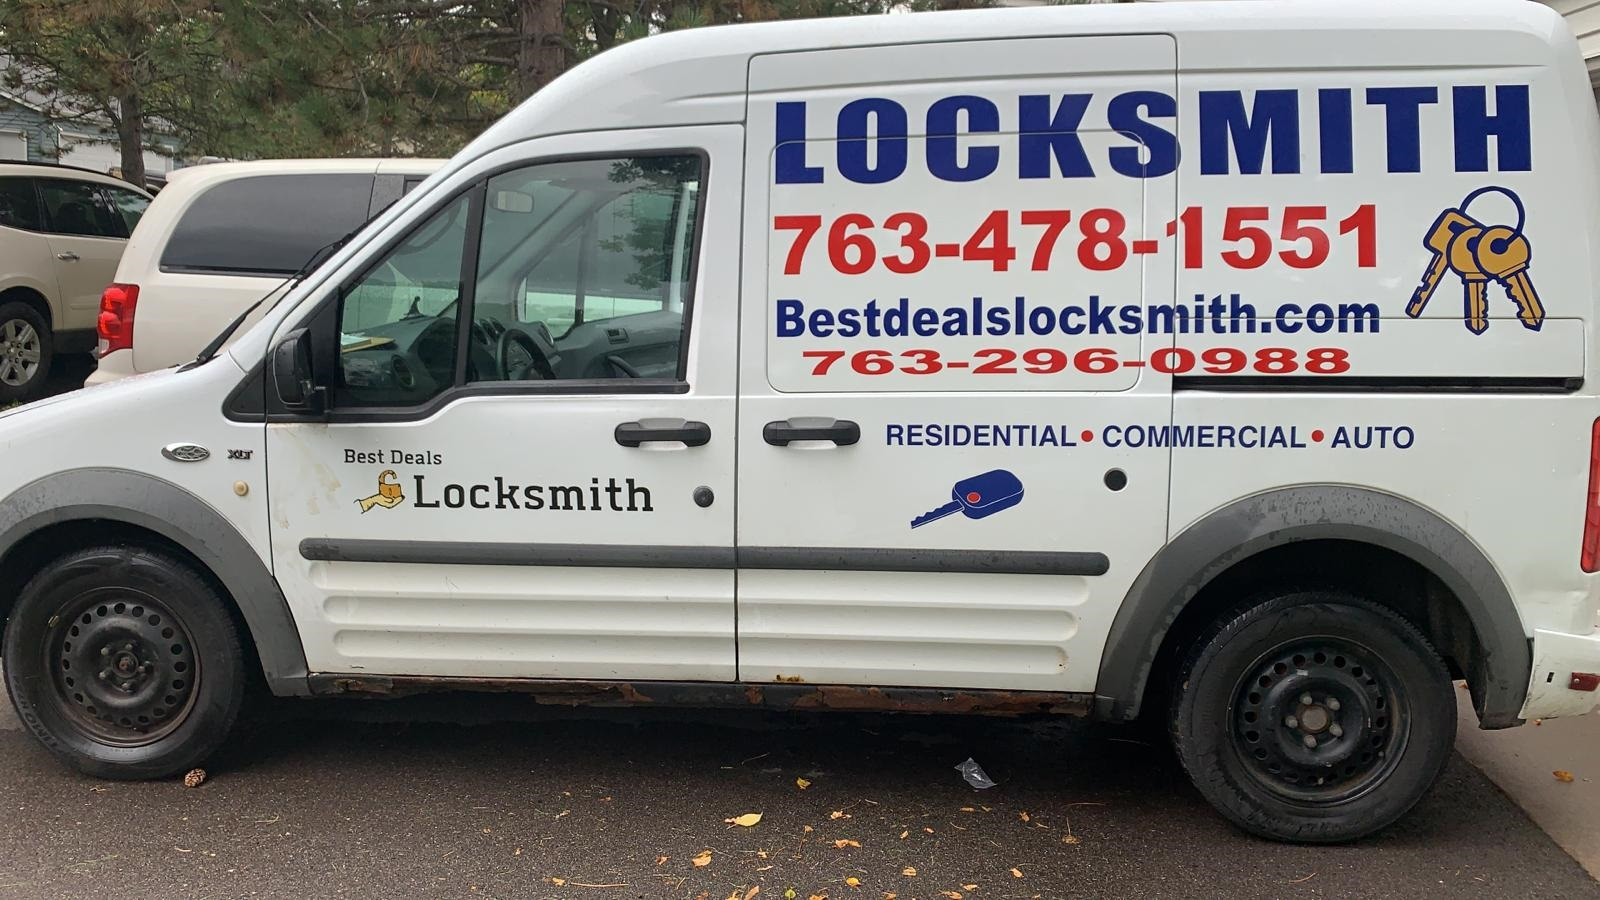 Best Deal Locksmith LLC